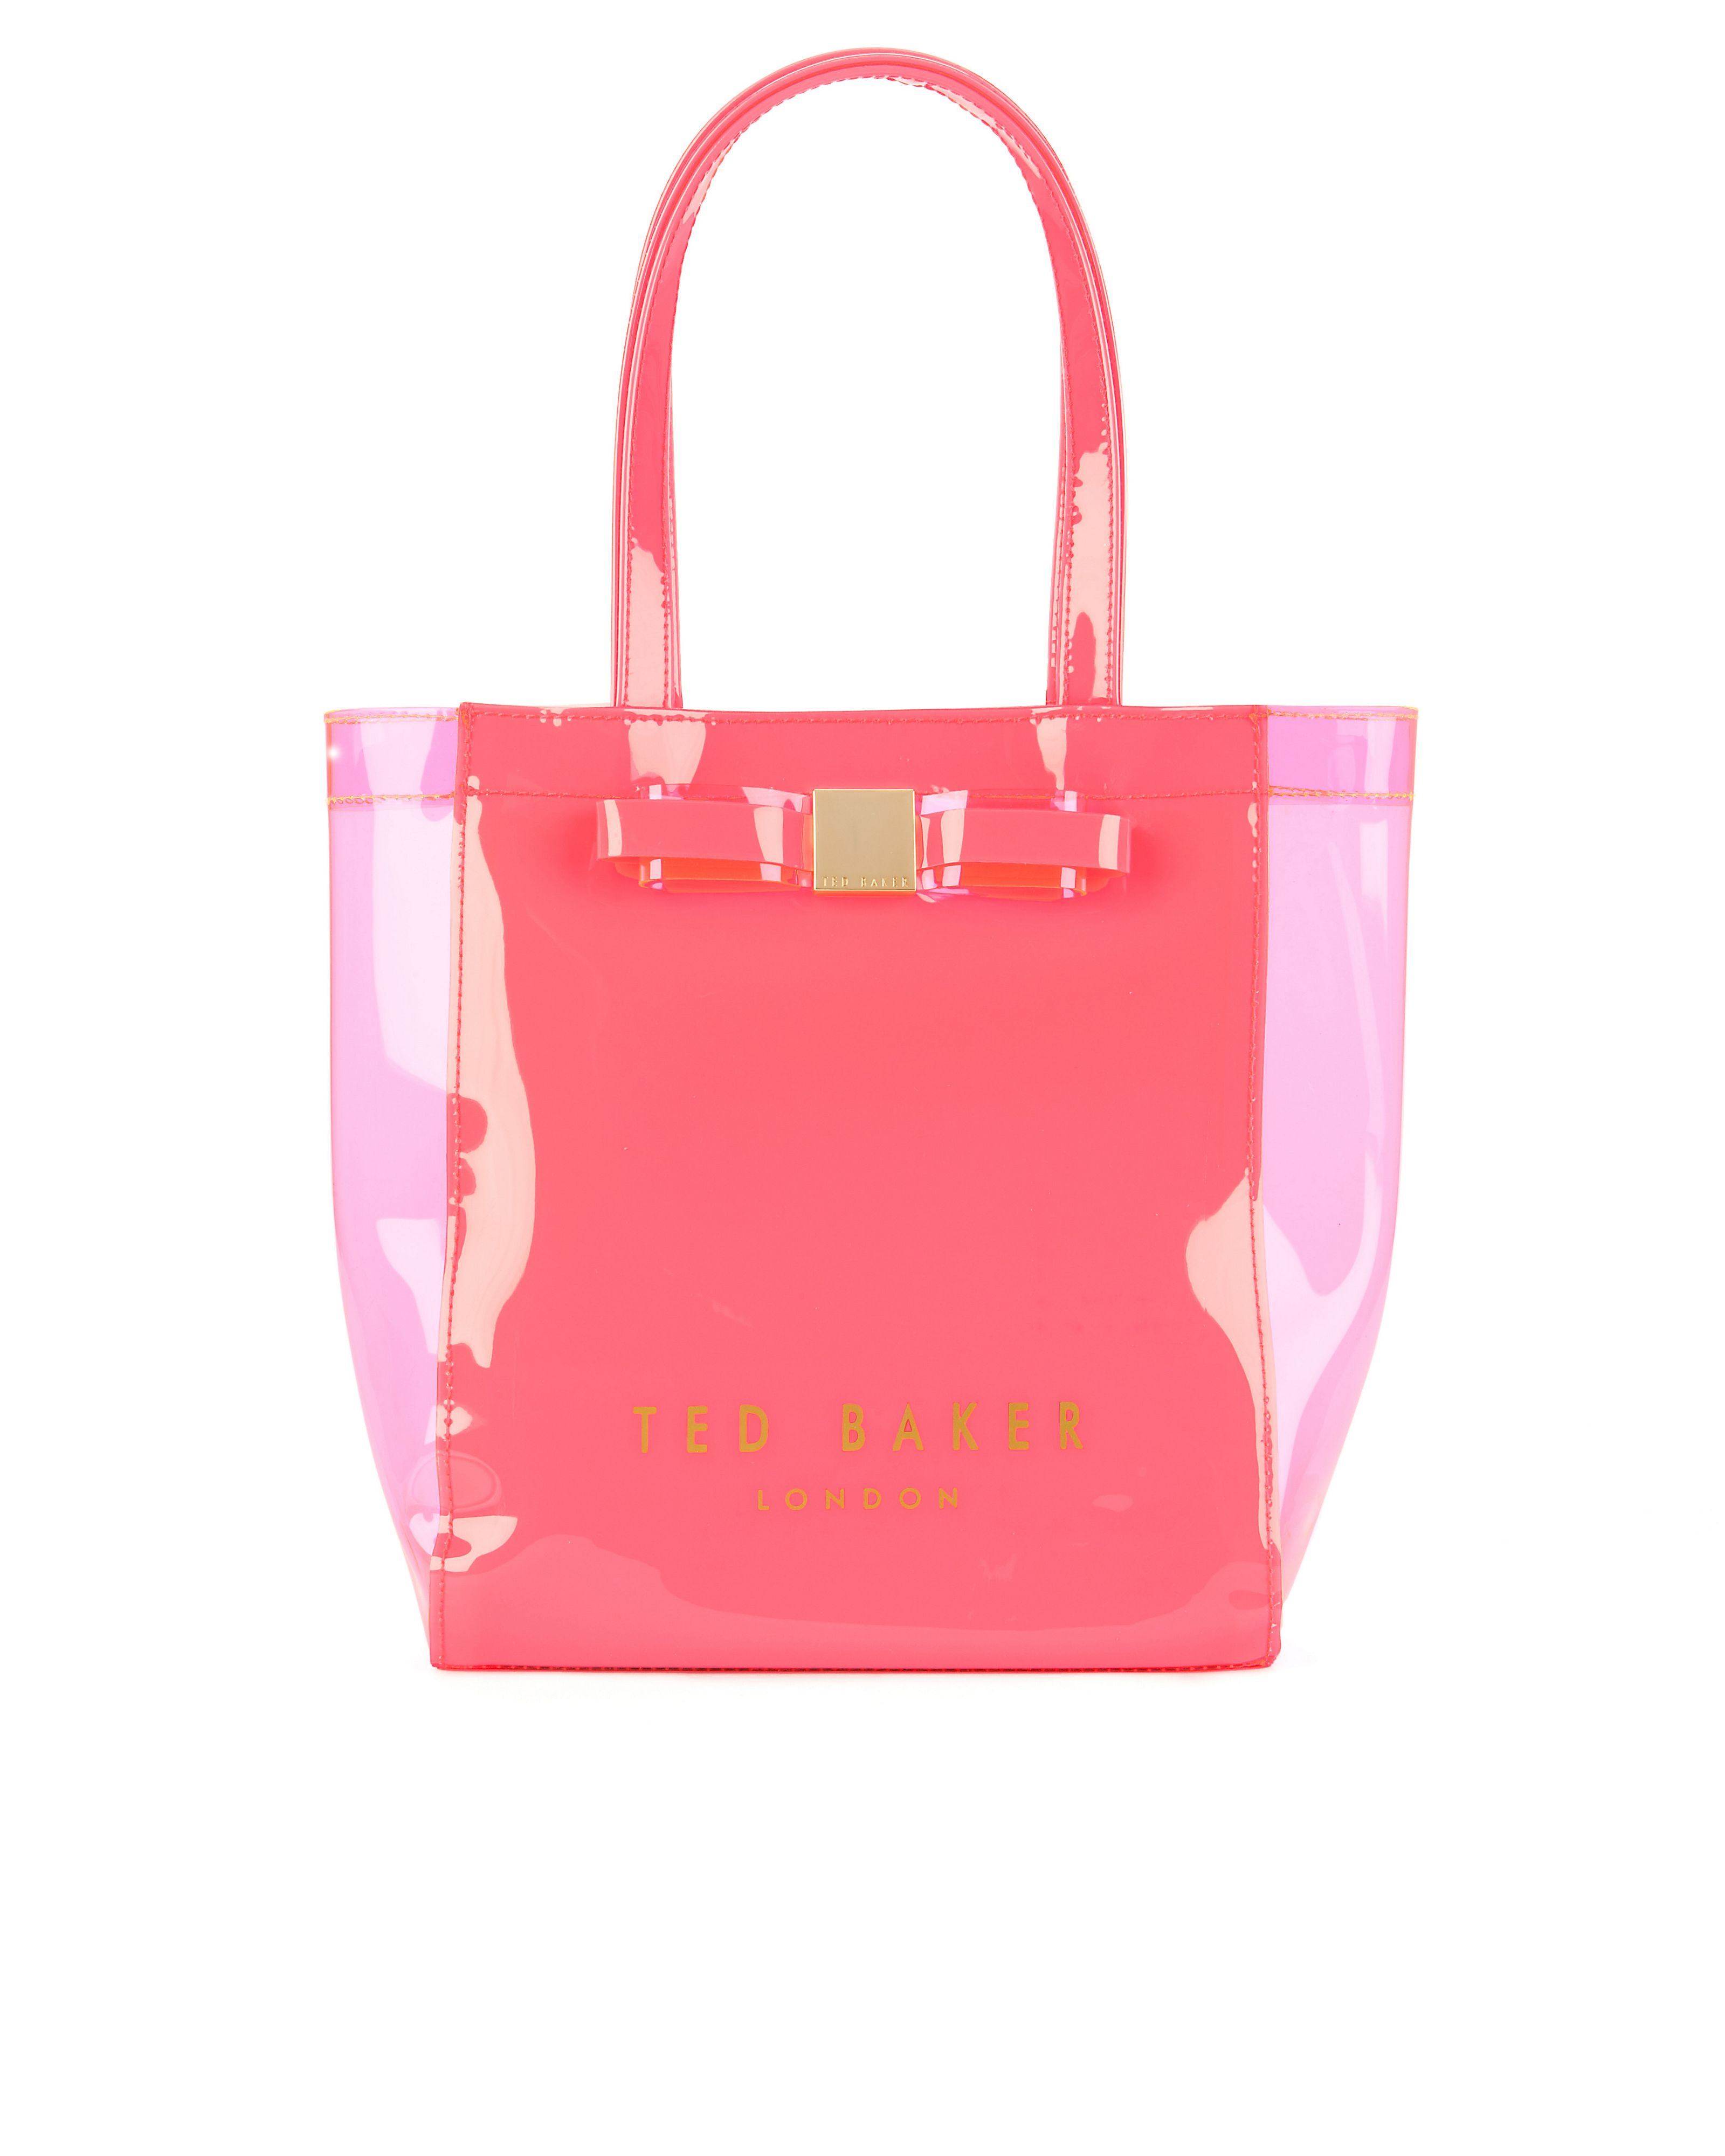 Lucon small shopper bag